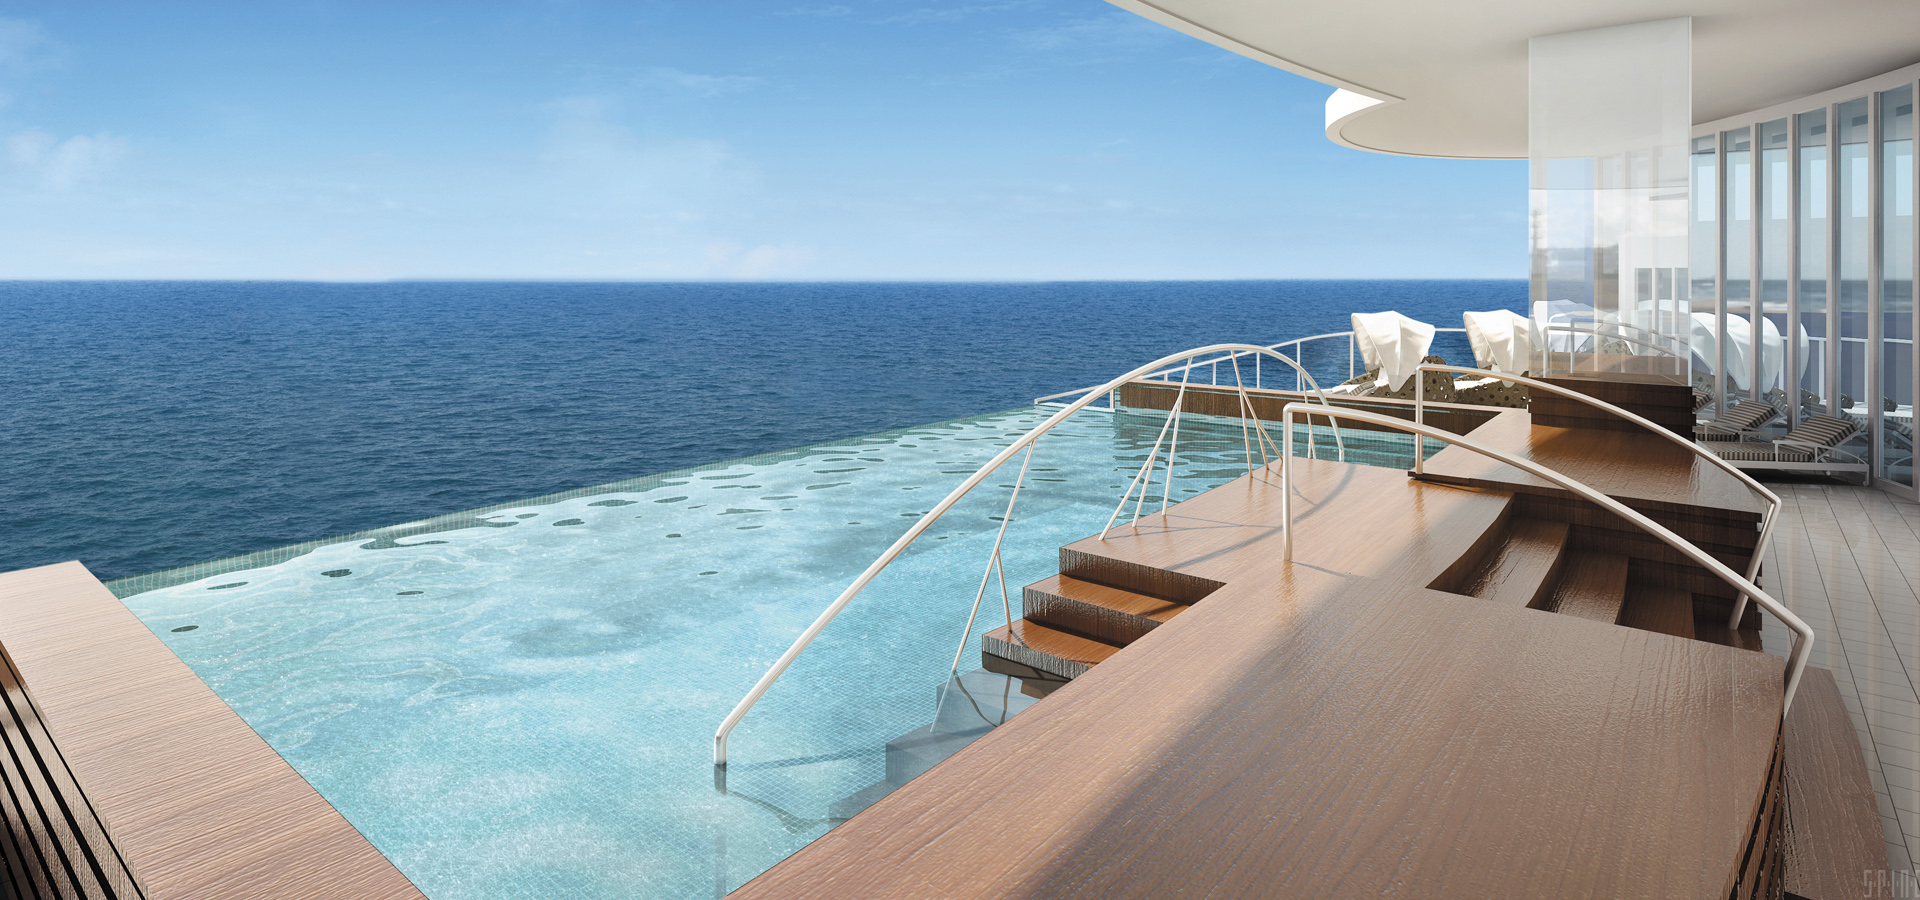 A Luxury Cruise Aboard the World's Most Expensive Cruise Ship